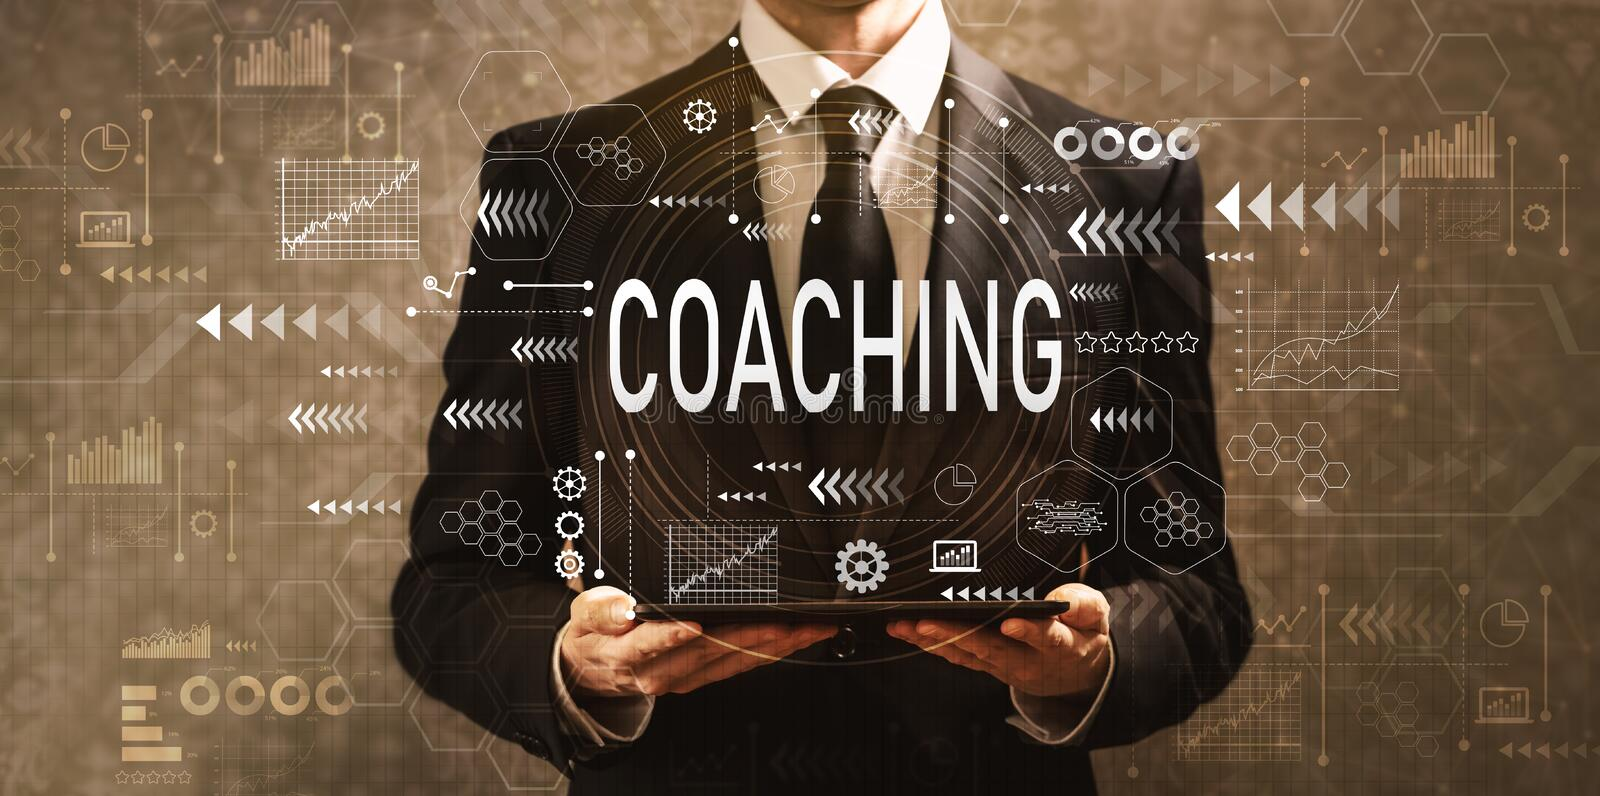 Coaching with businessman holding a tablet computer royalty free stock photo